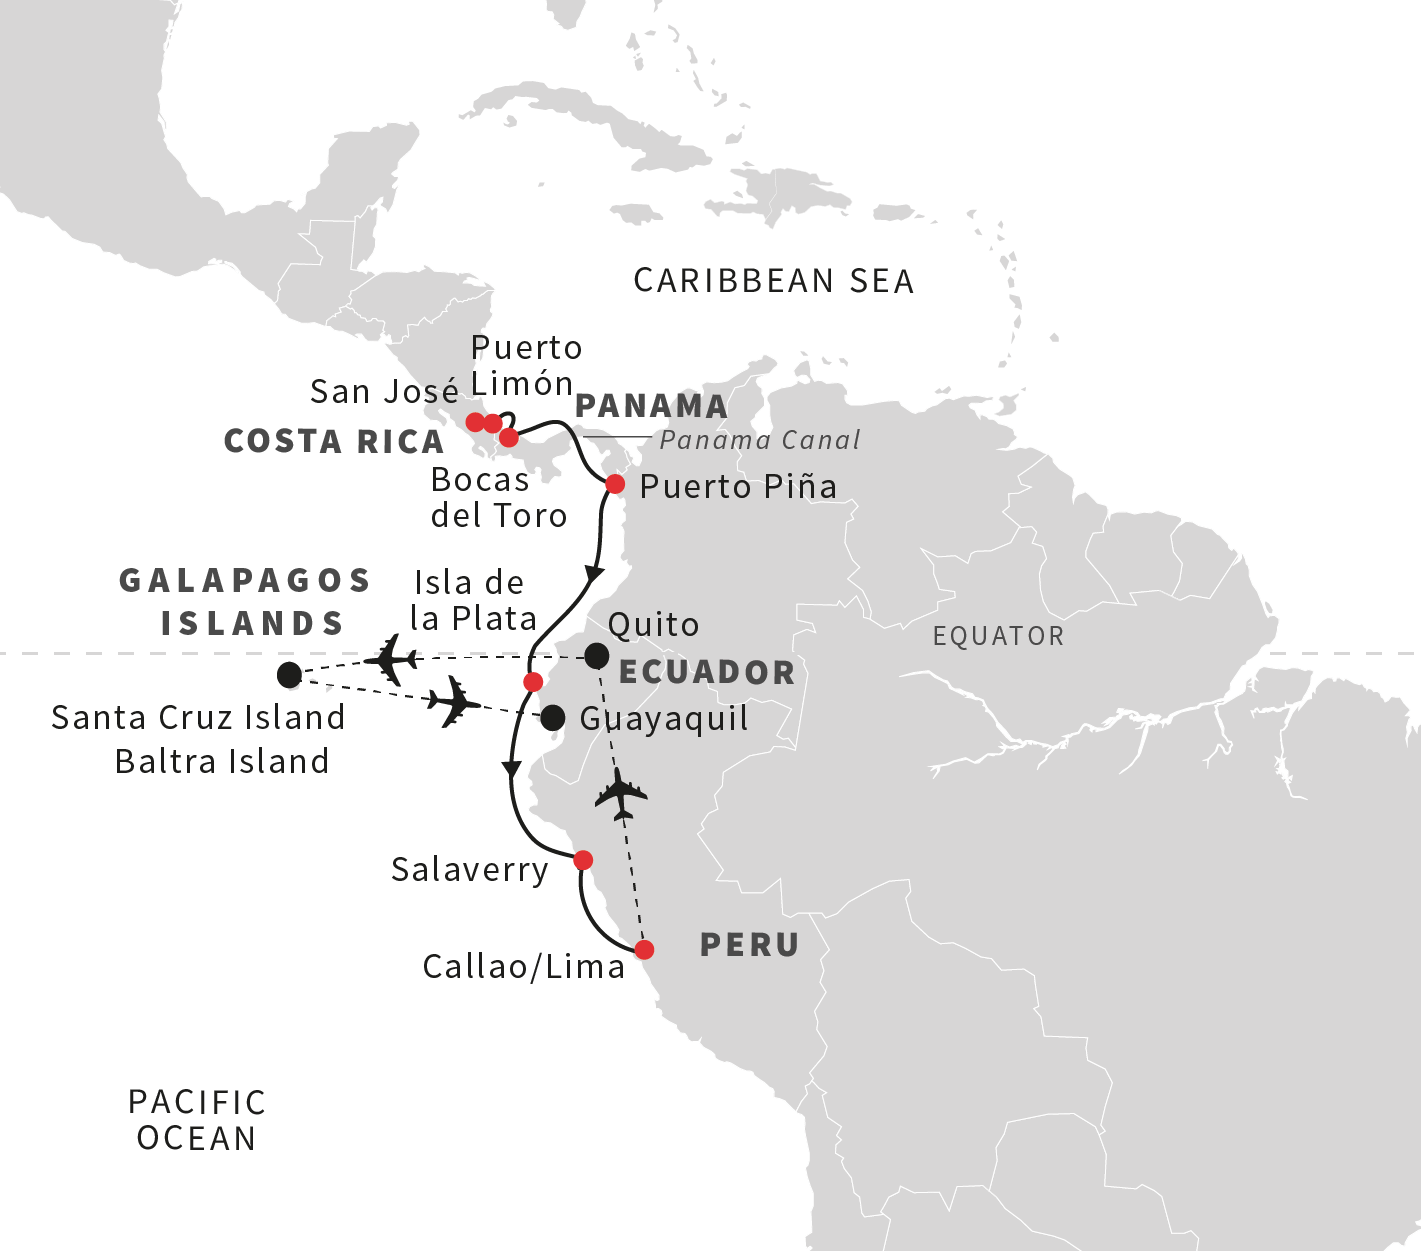 South America Map Galapagos Islands.Cruise To The Galapagos Islands From Costa Rica To Ecuador